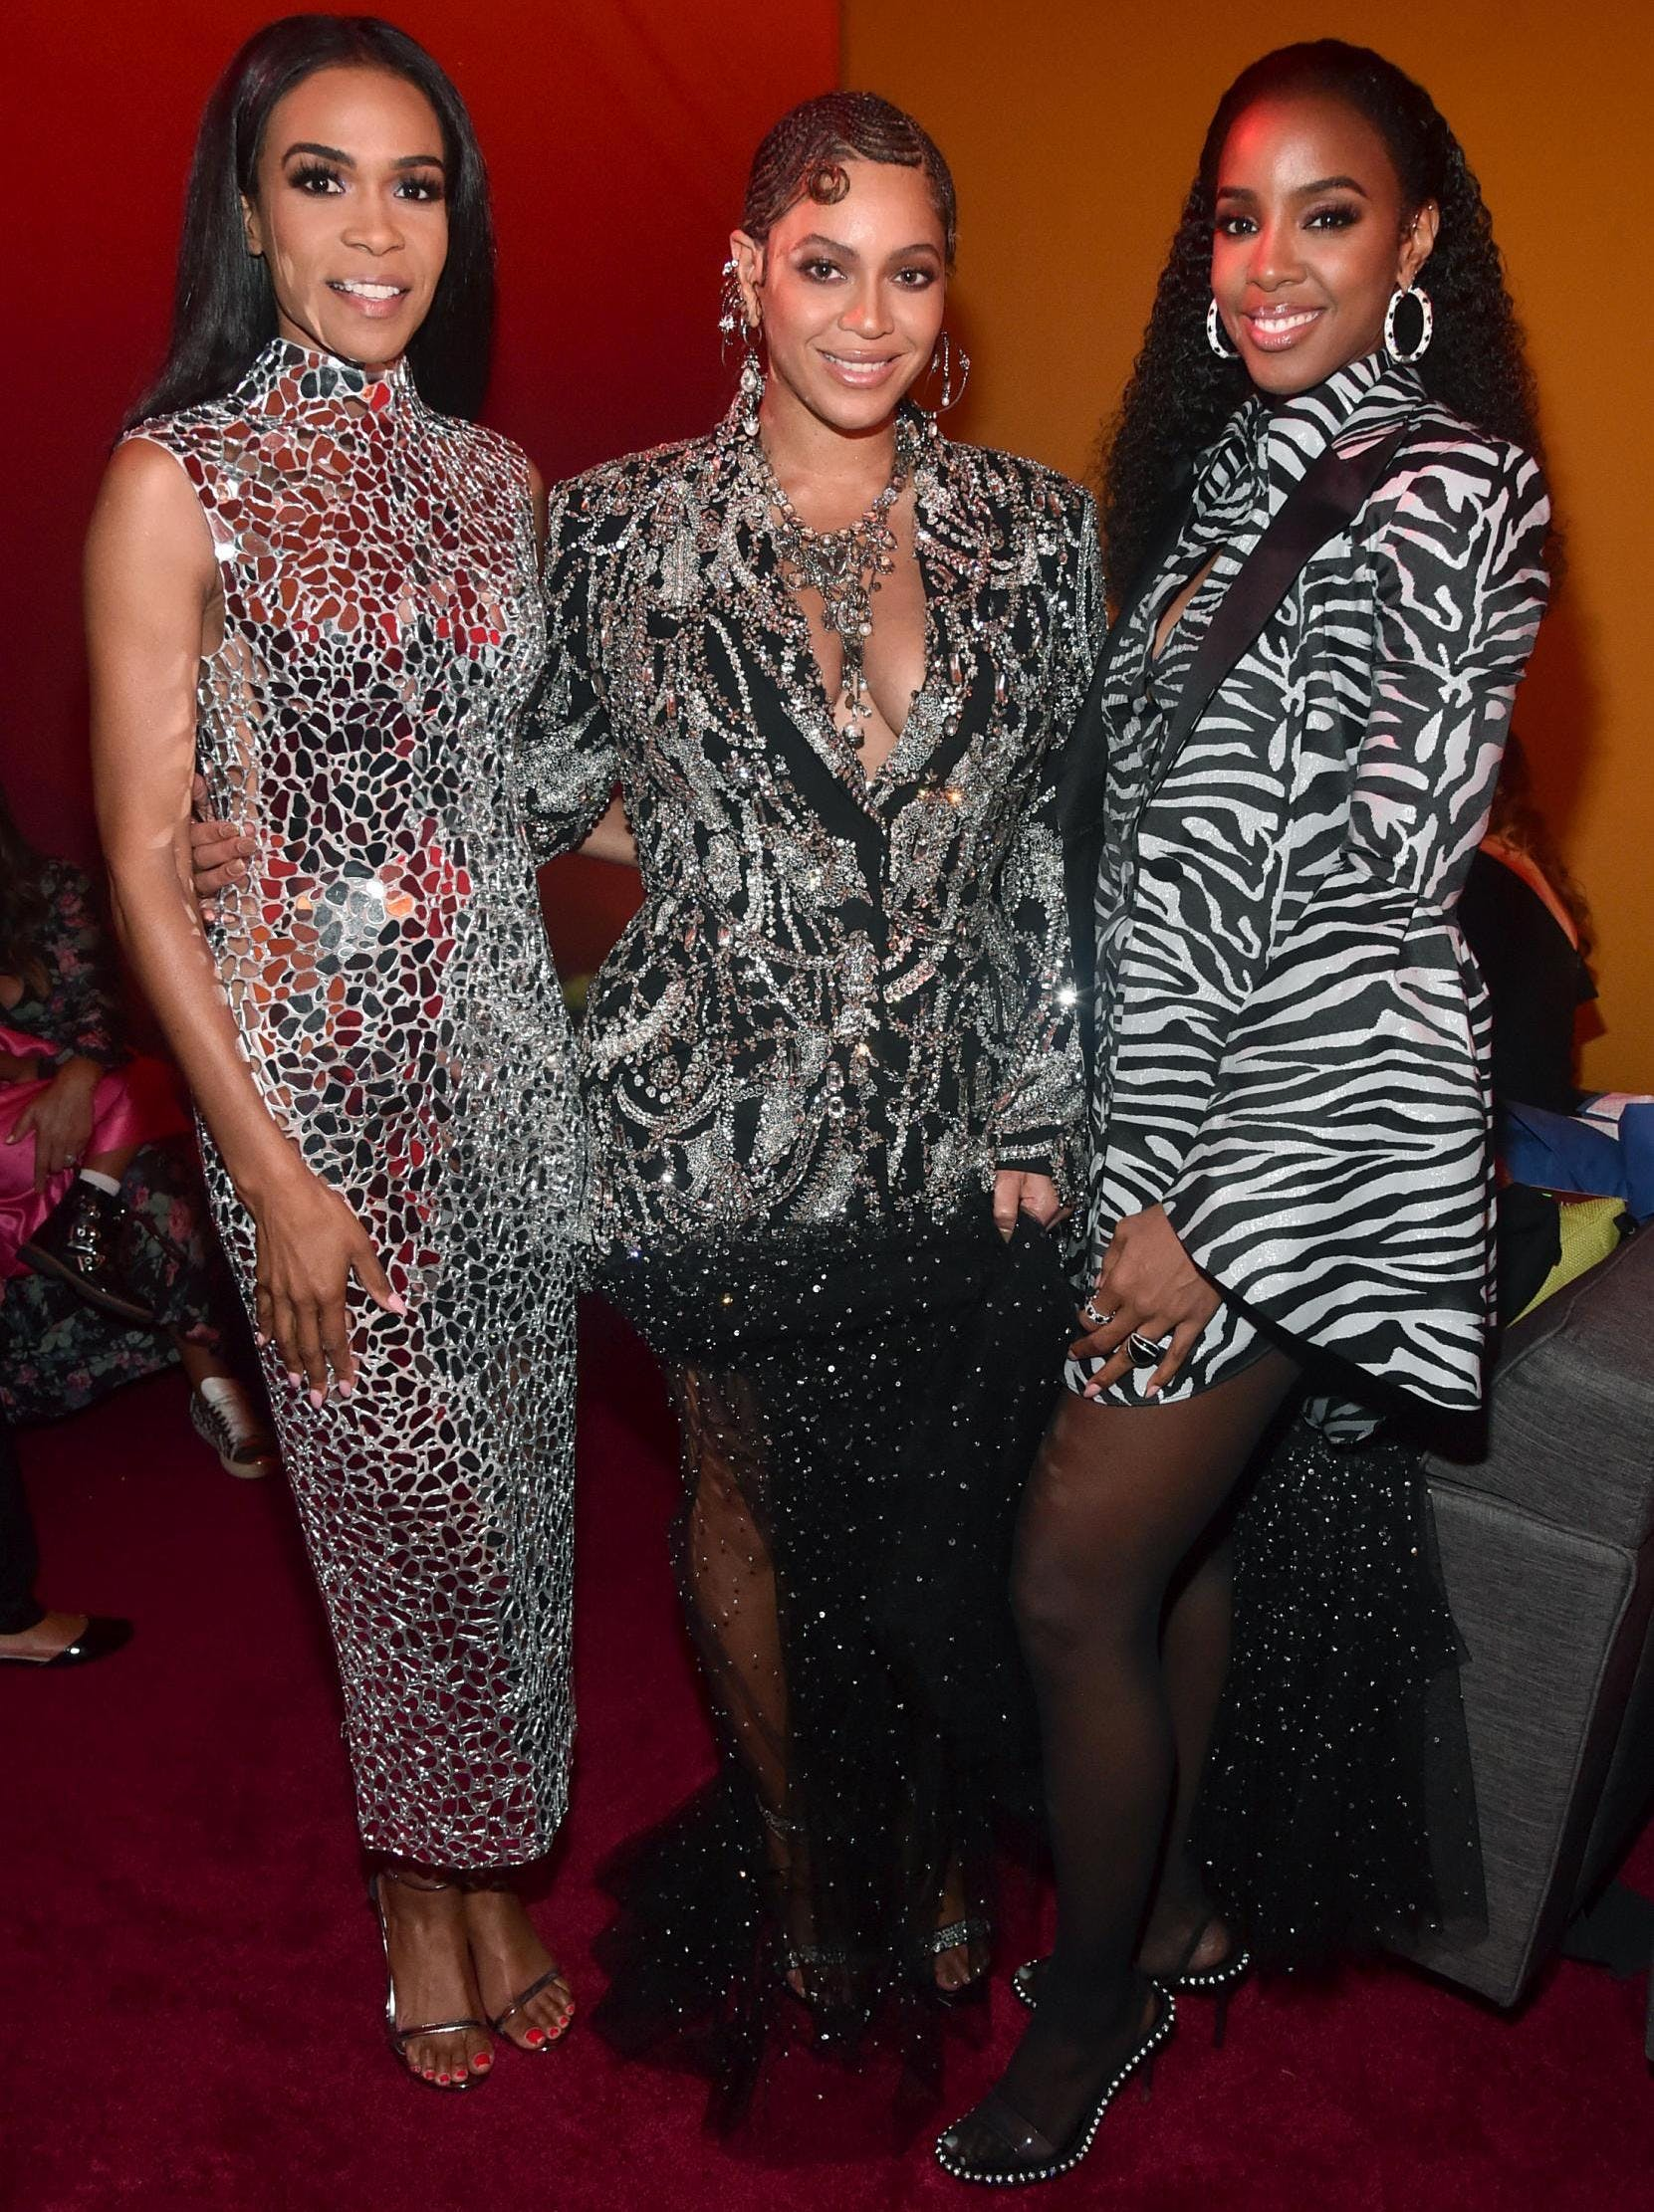 michelle williams beyonce and kelly rowland at the premiere of the lion king